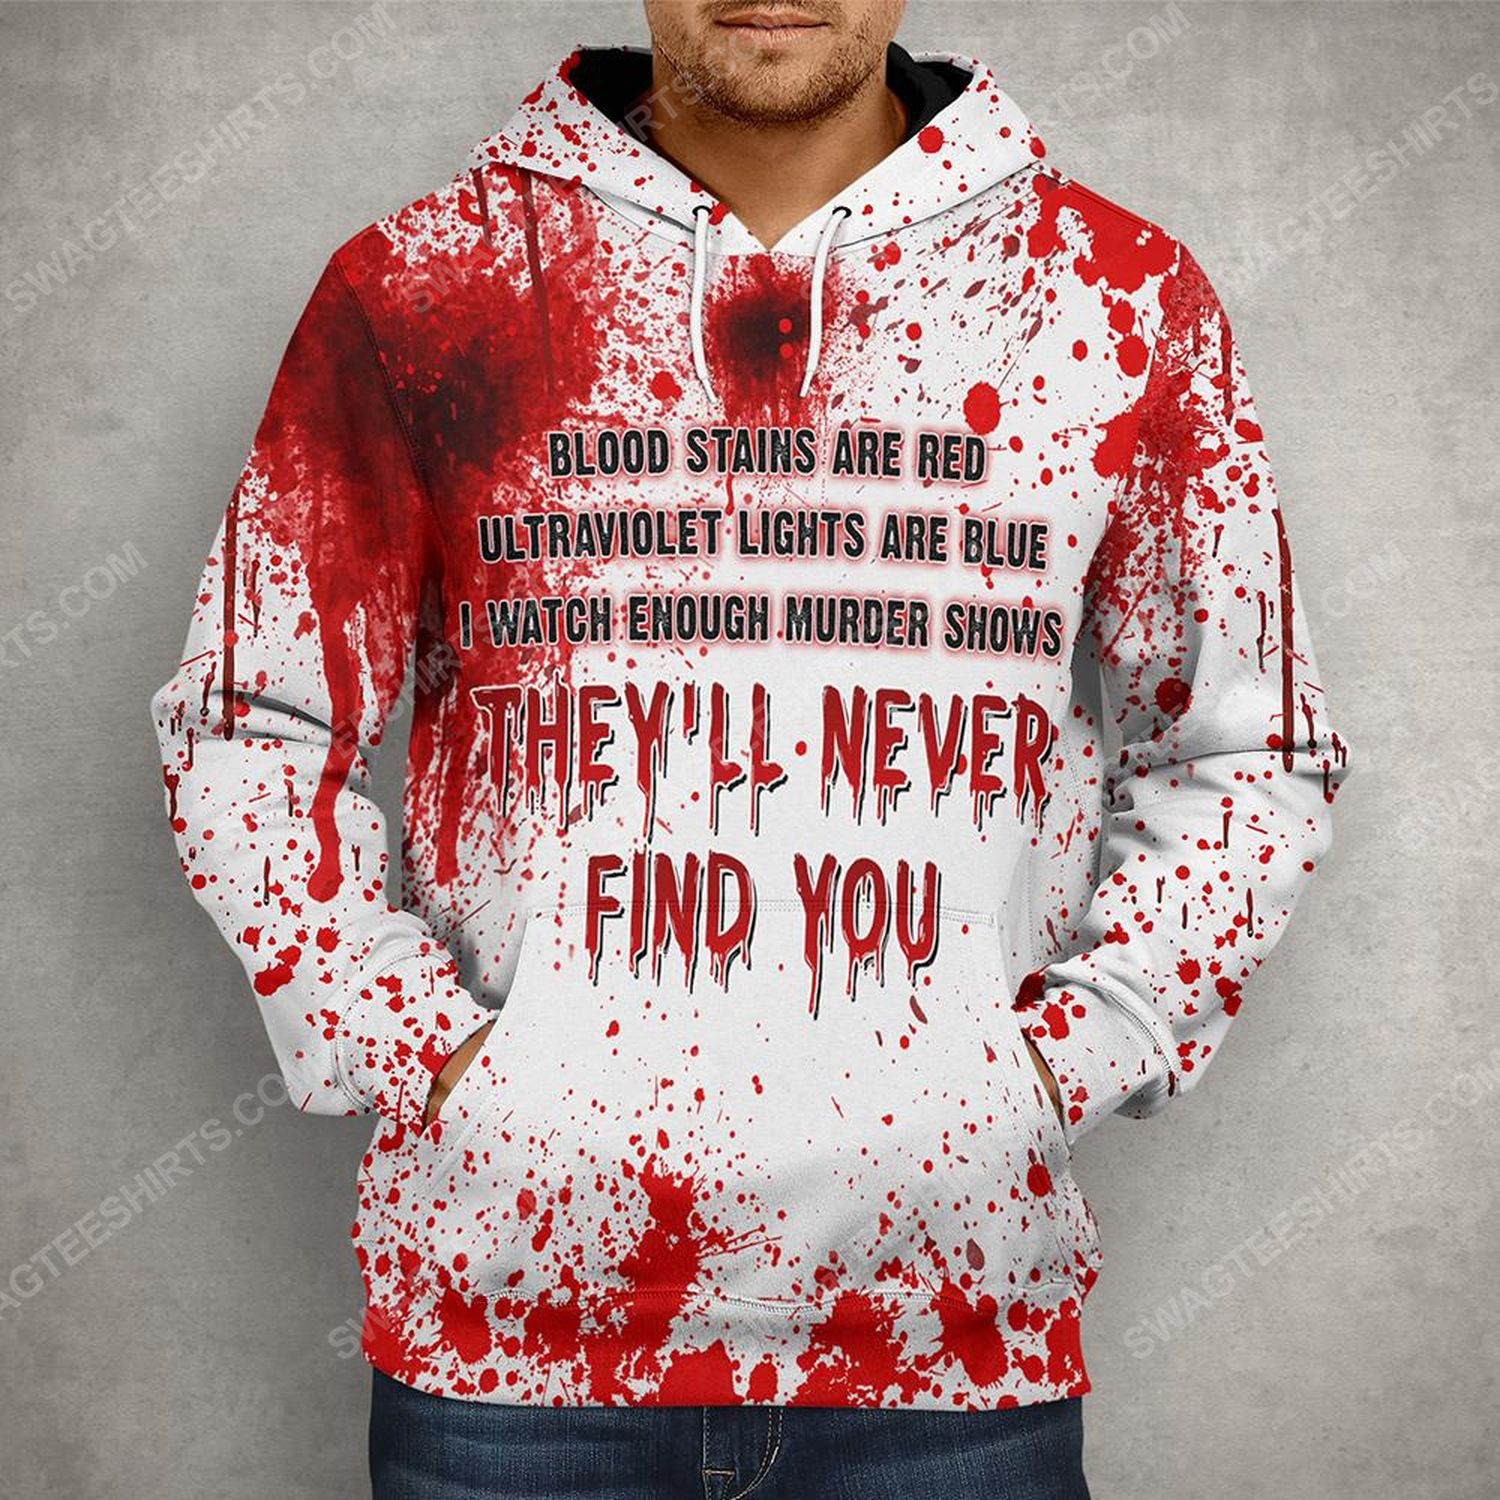 Halloween blood stains are red ultraviolet lights are blue i watch enough murder shows they'll never find you shirt 2